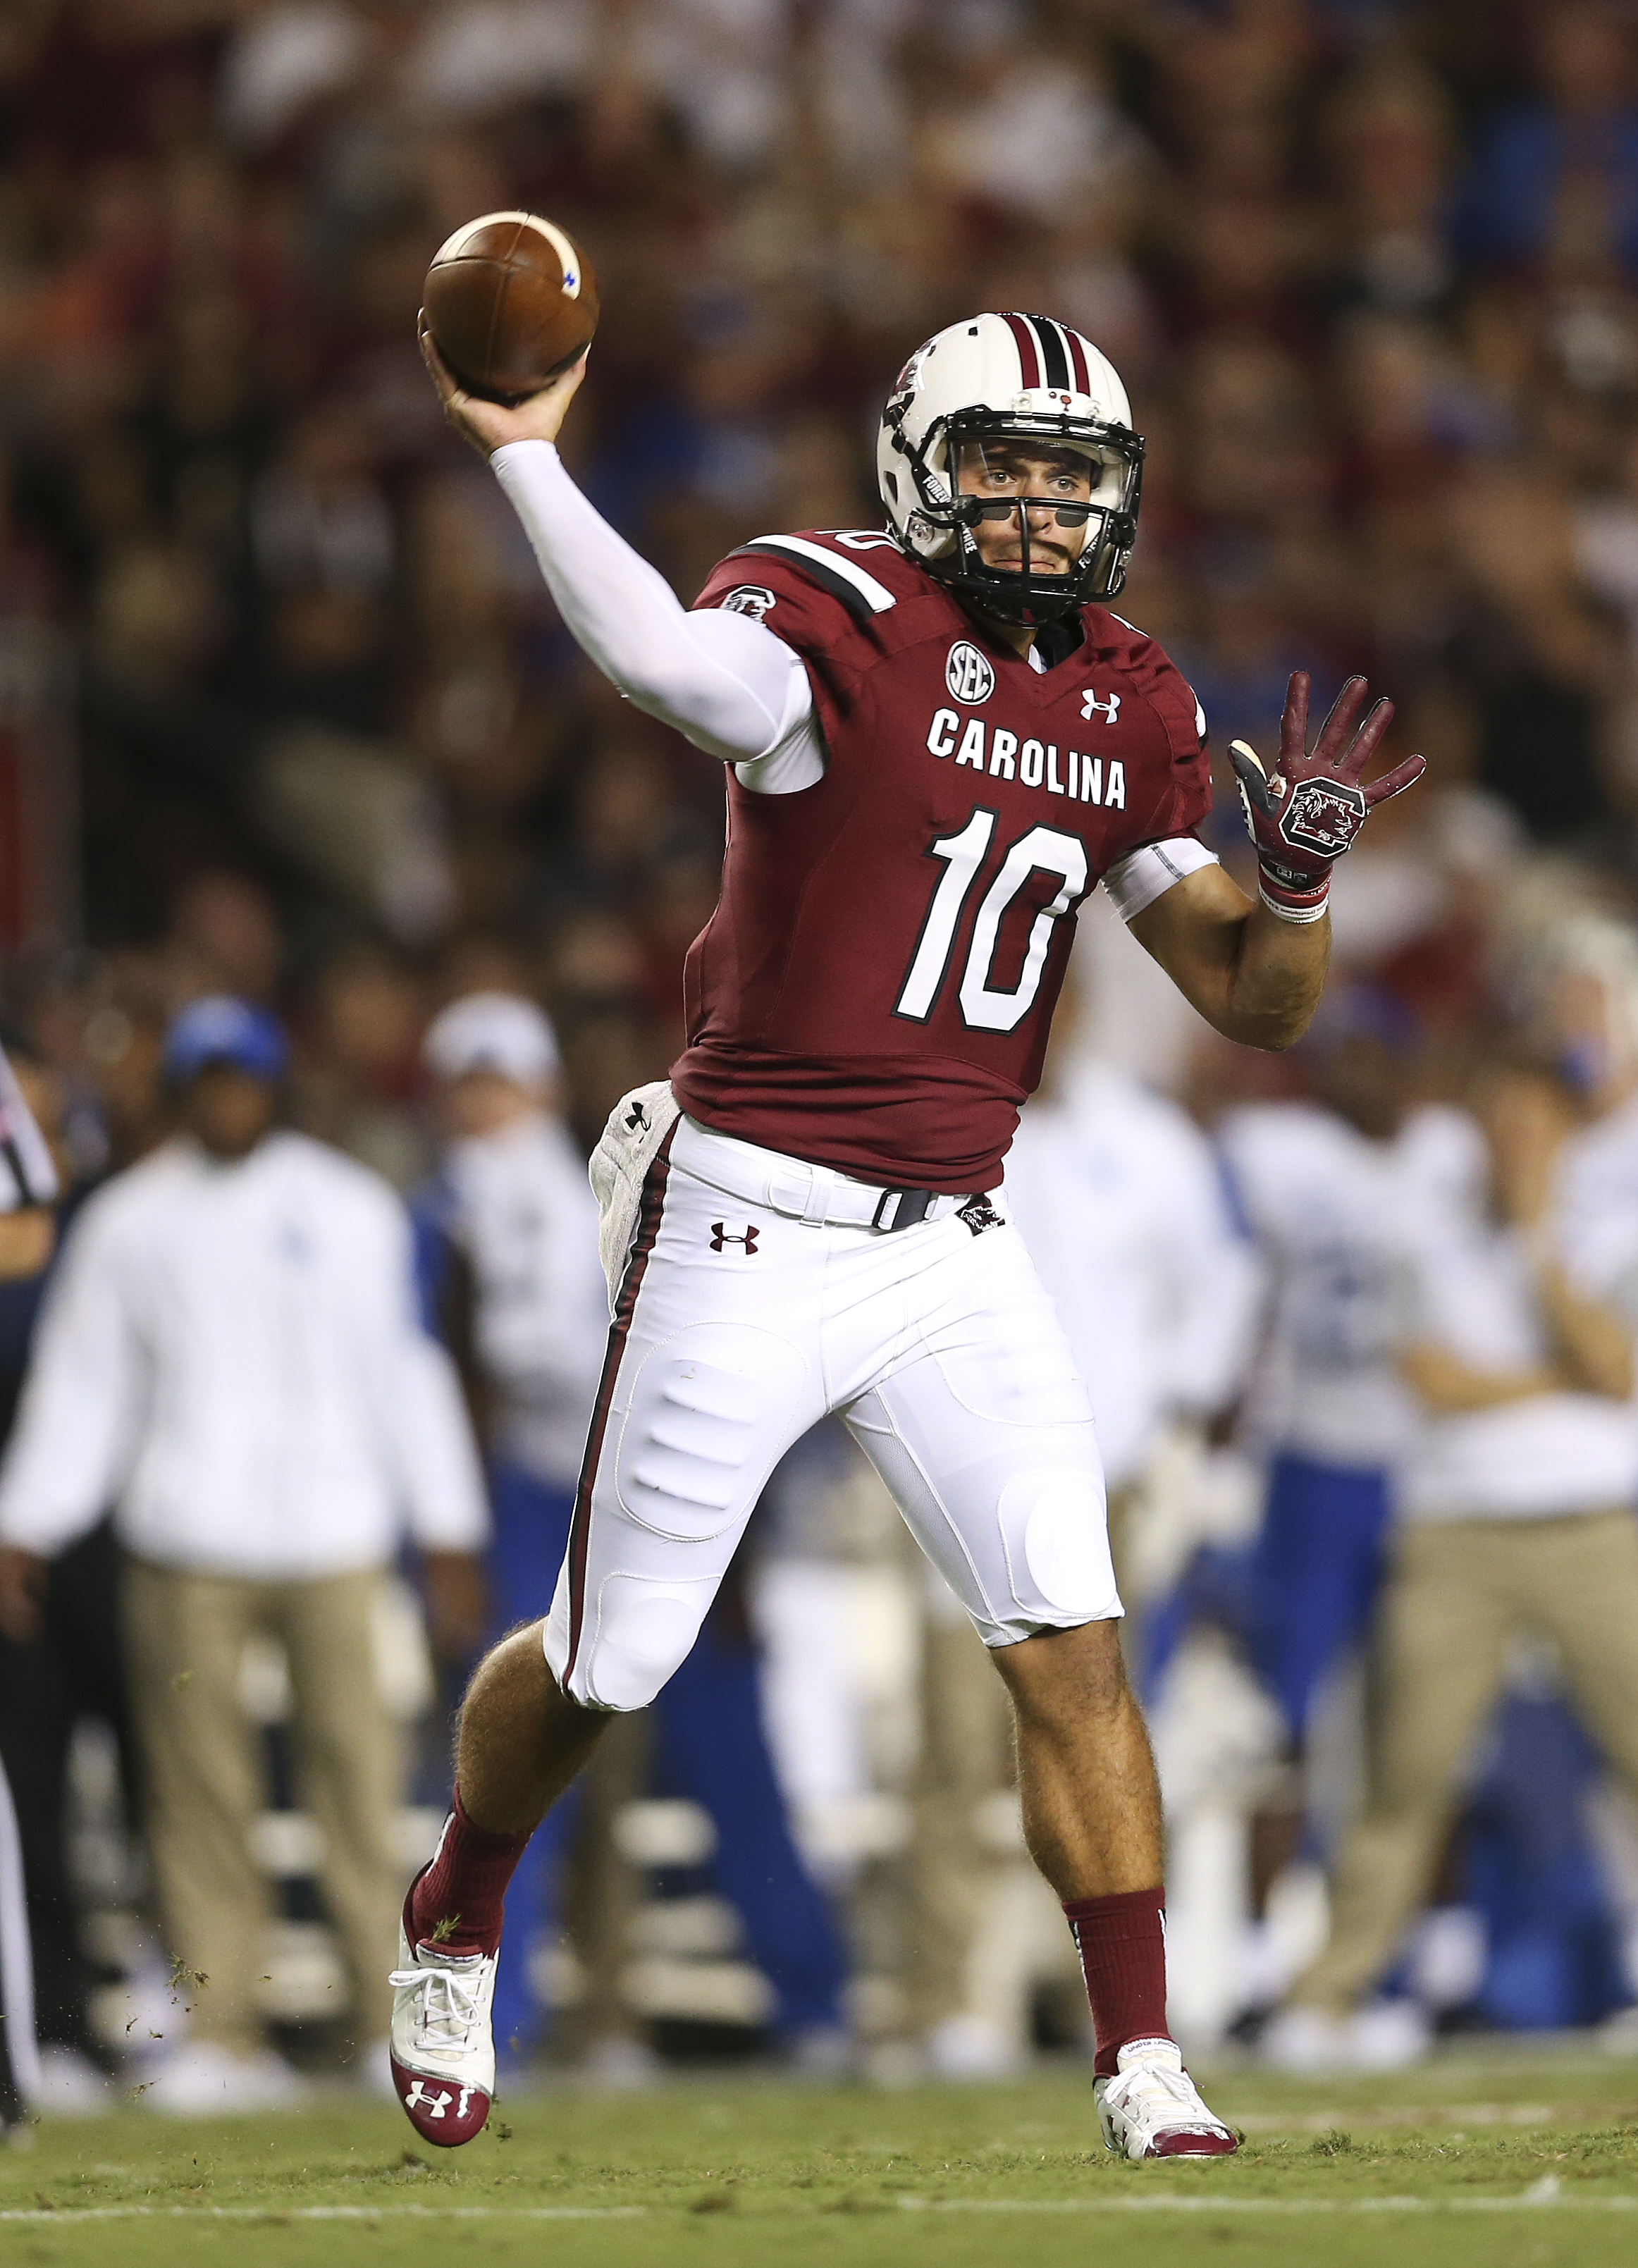 FILE- In this Saturday, Sept. 12, 2015, South Carolina quarterback Perry Orth (10) throws in the first half of an NCAA college football game against Kentucky in Columbia, S.C. Orth looks calm and unperturbed as he prepares for his first college start when